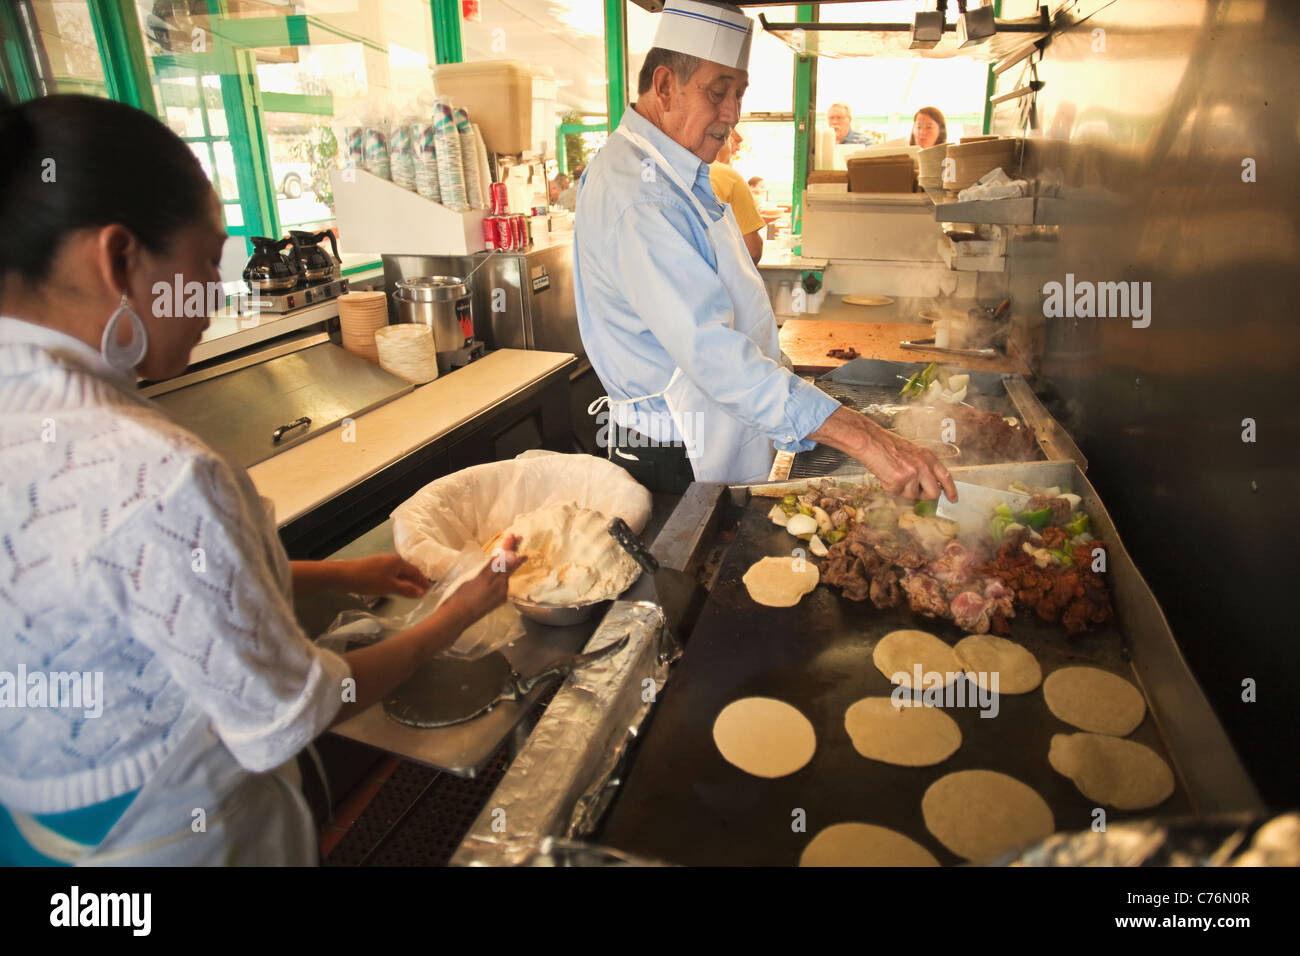 La Super Rica Taqueria, Santa Barbara, California, United States of America Stock Photo